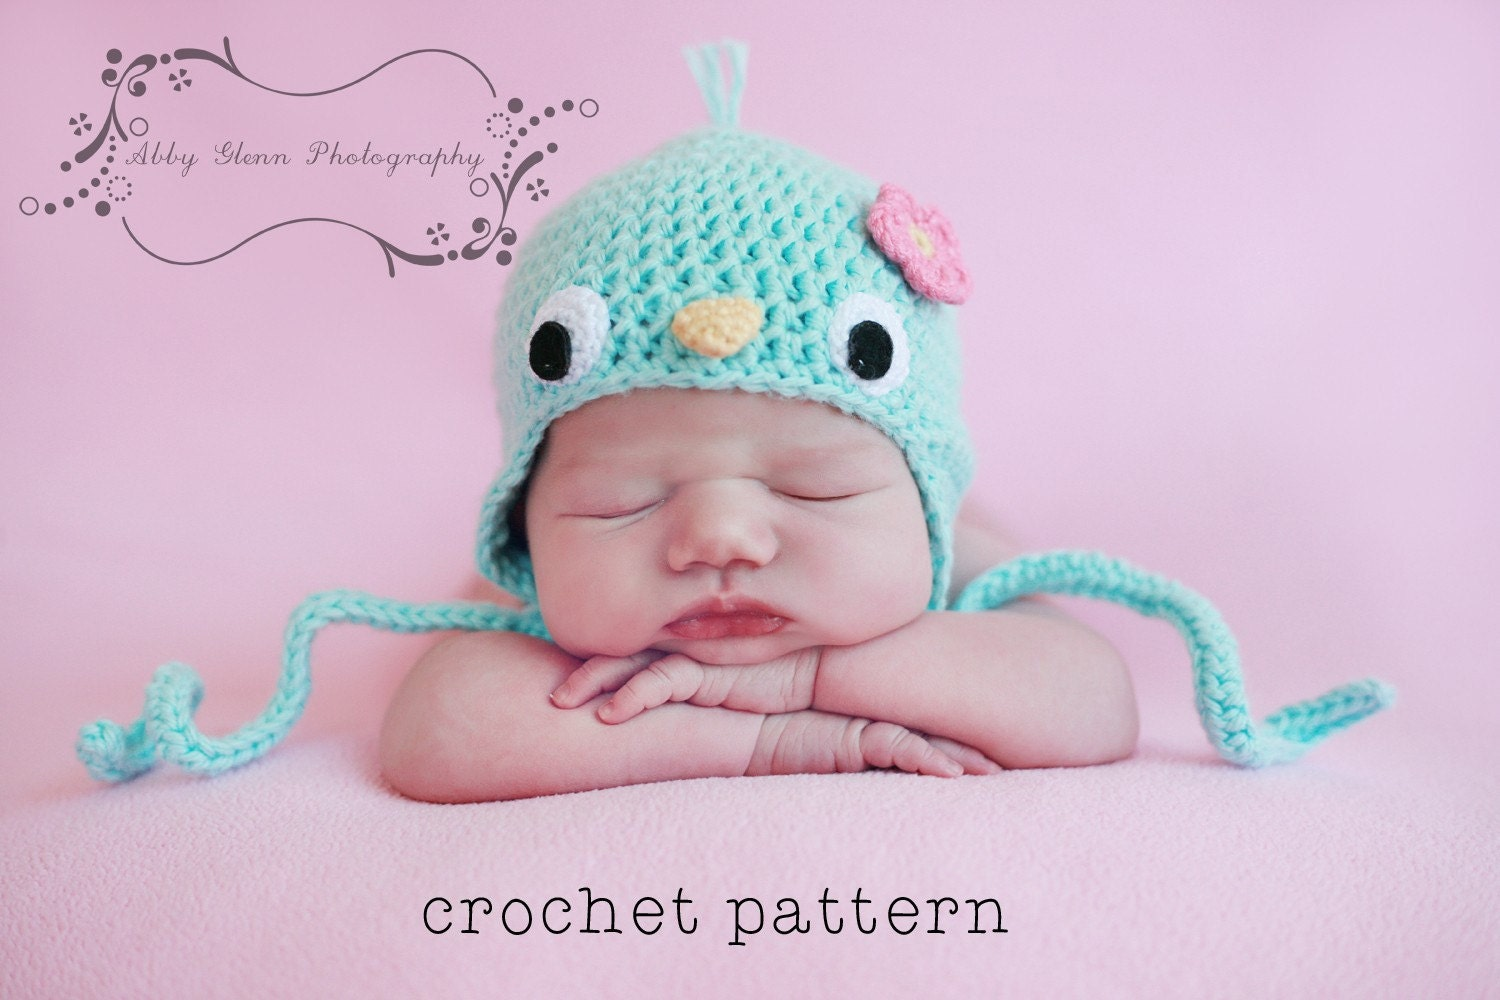 Crochet Patterns Baby Hats With Flowers : PDF Crochet Pattern Baby Bluebird Hat w Flower by ...